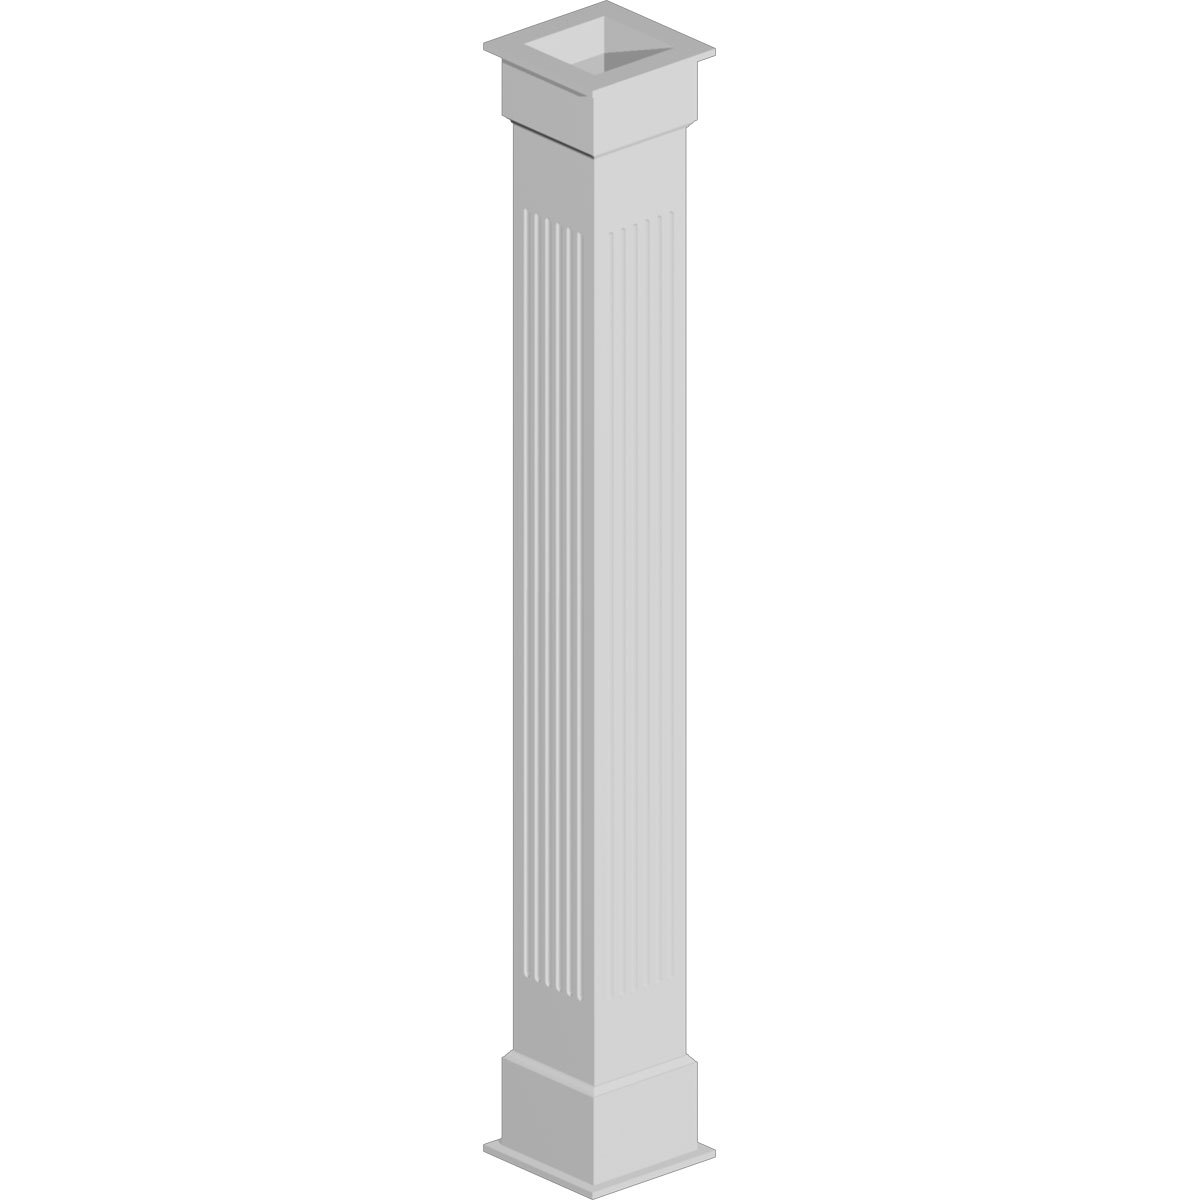 COLUMN WRAP KIT 12X108 F 1BX, NON TAPERED FLUTED